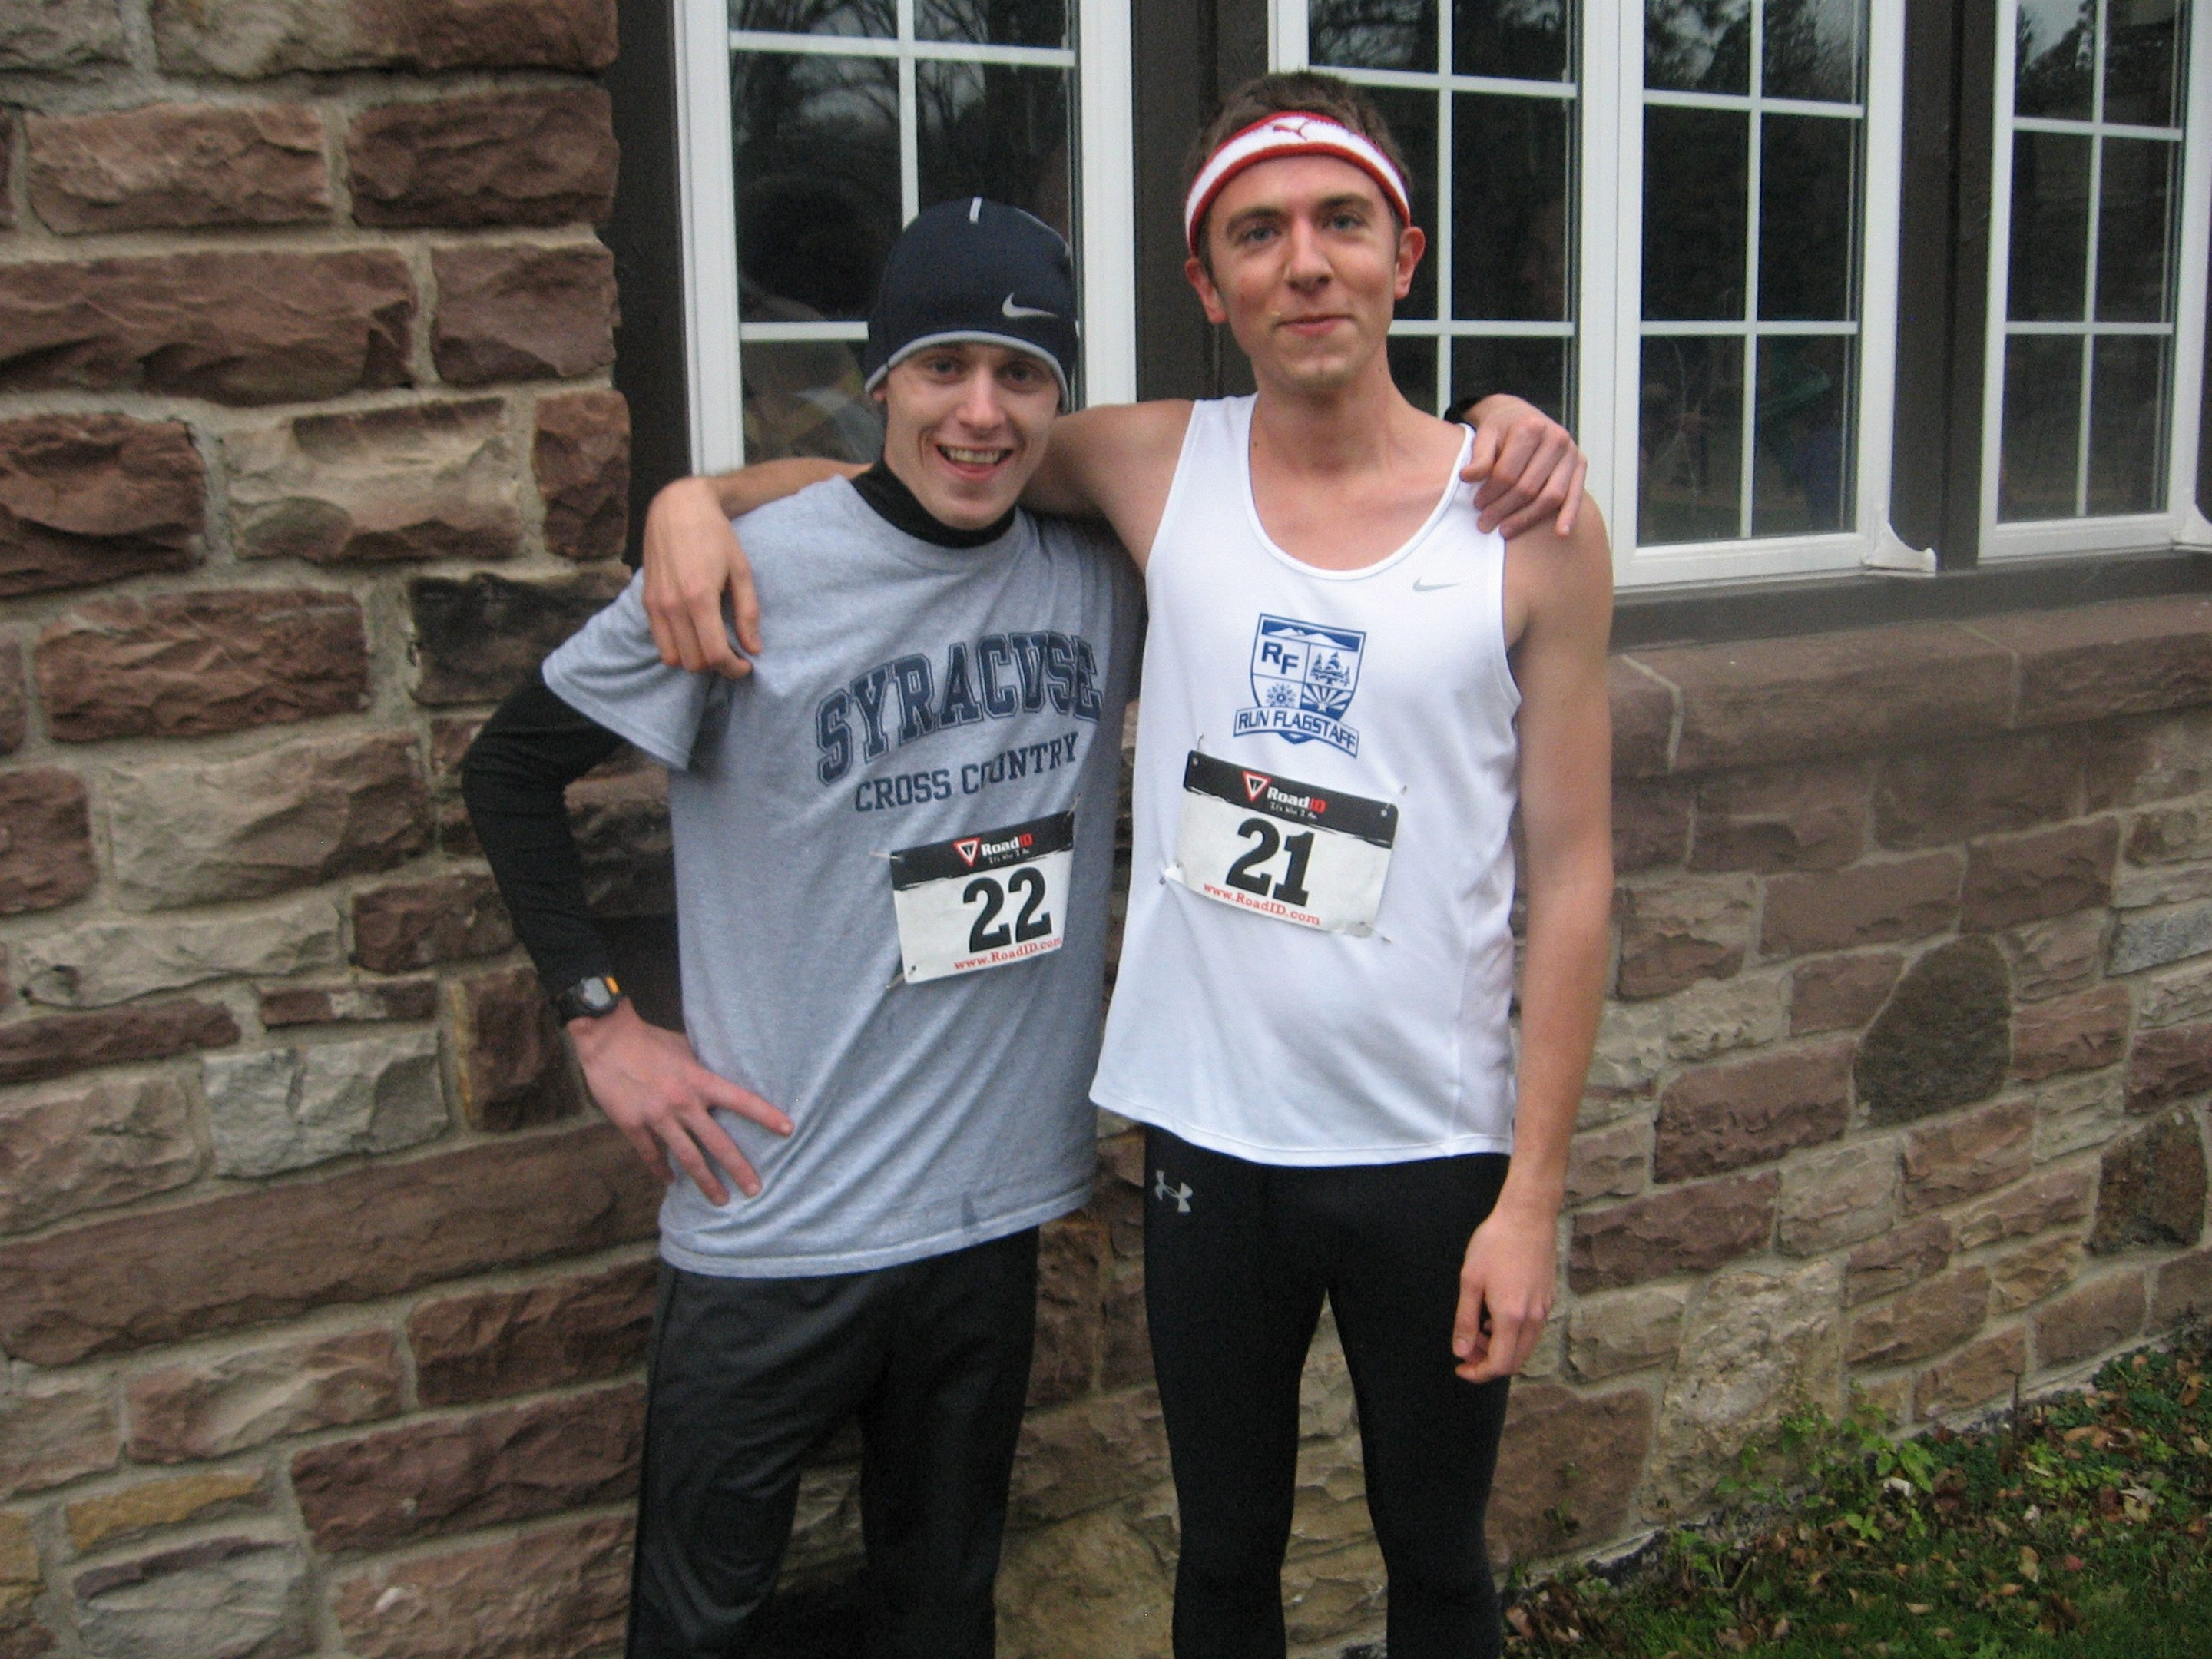 Winner Joe Whelan, left, broke the course record in the Mighty Mile while friend Ryan Poley finished second.